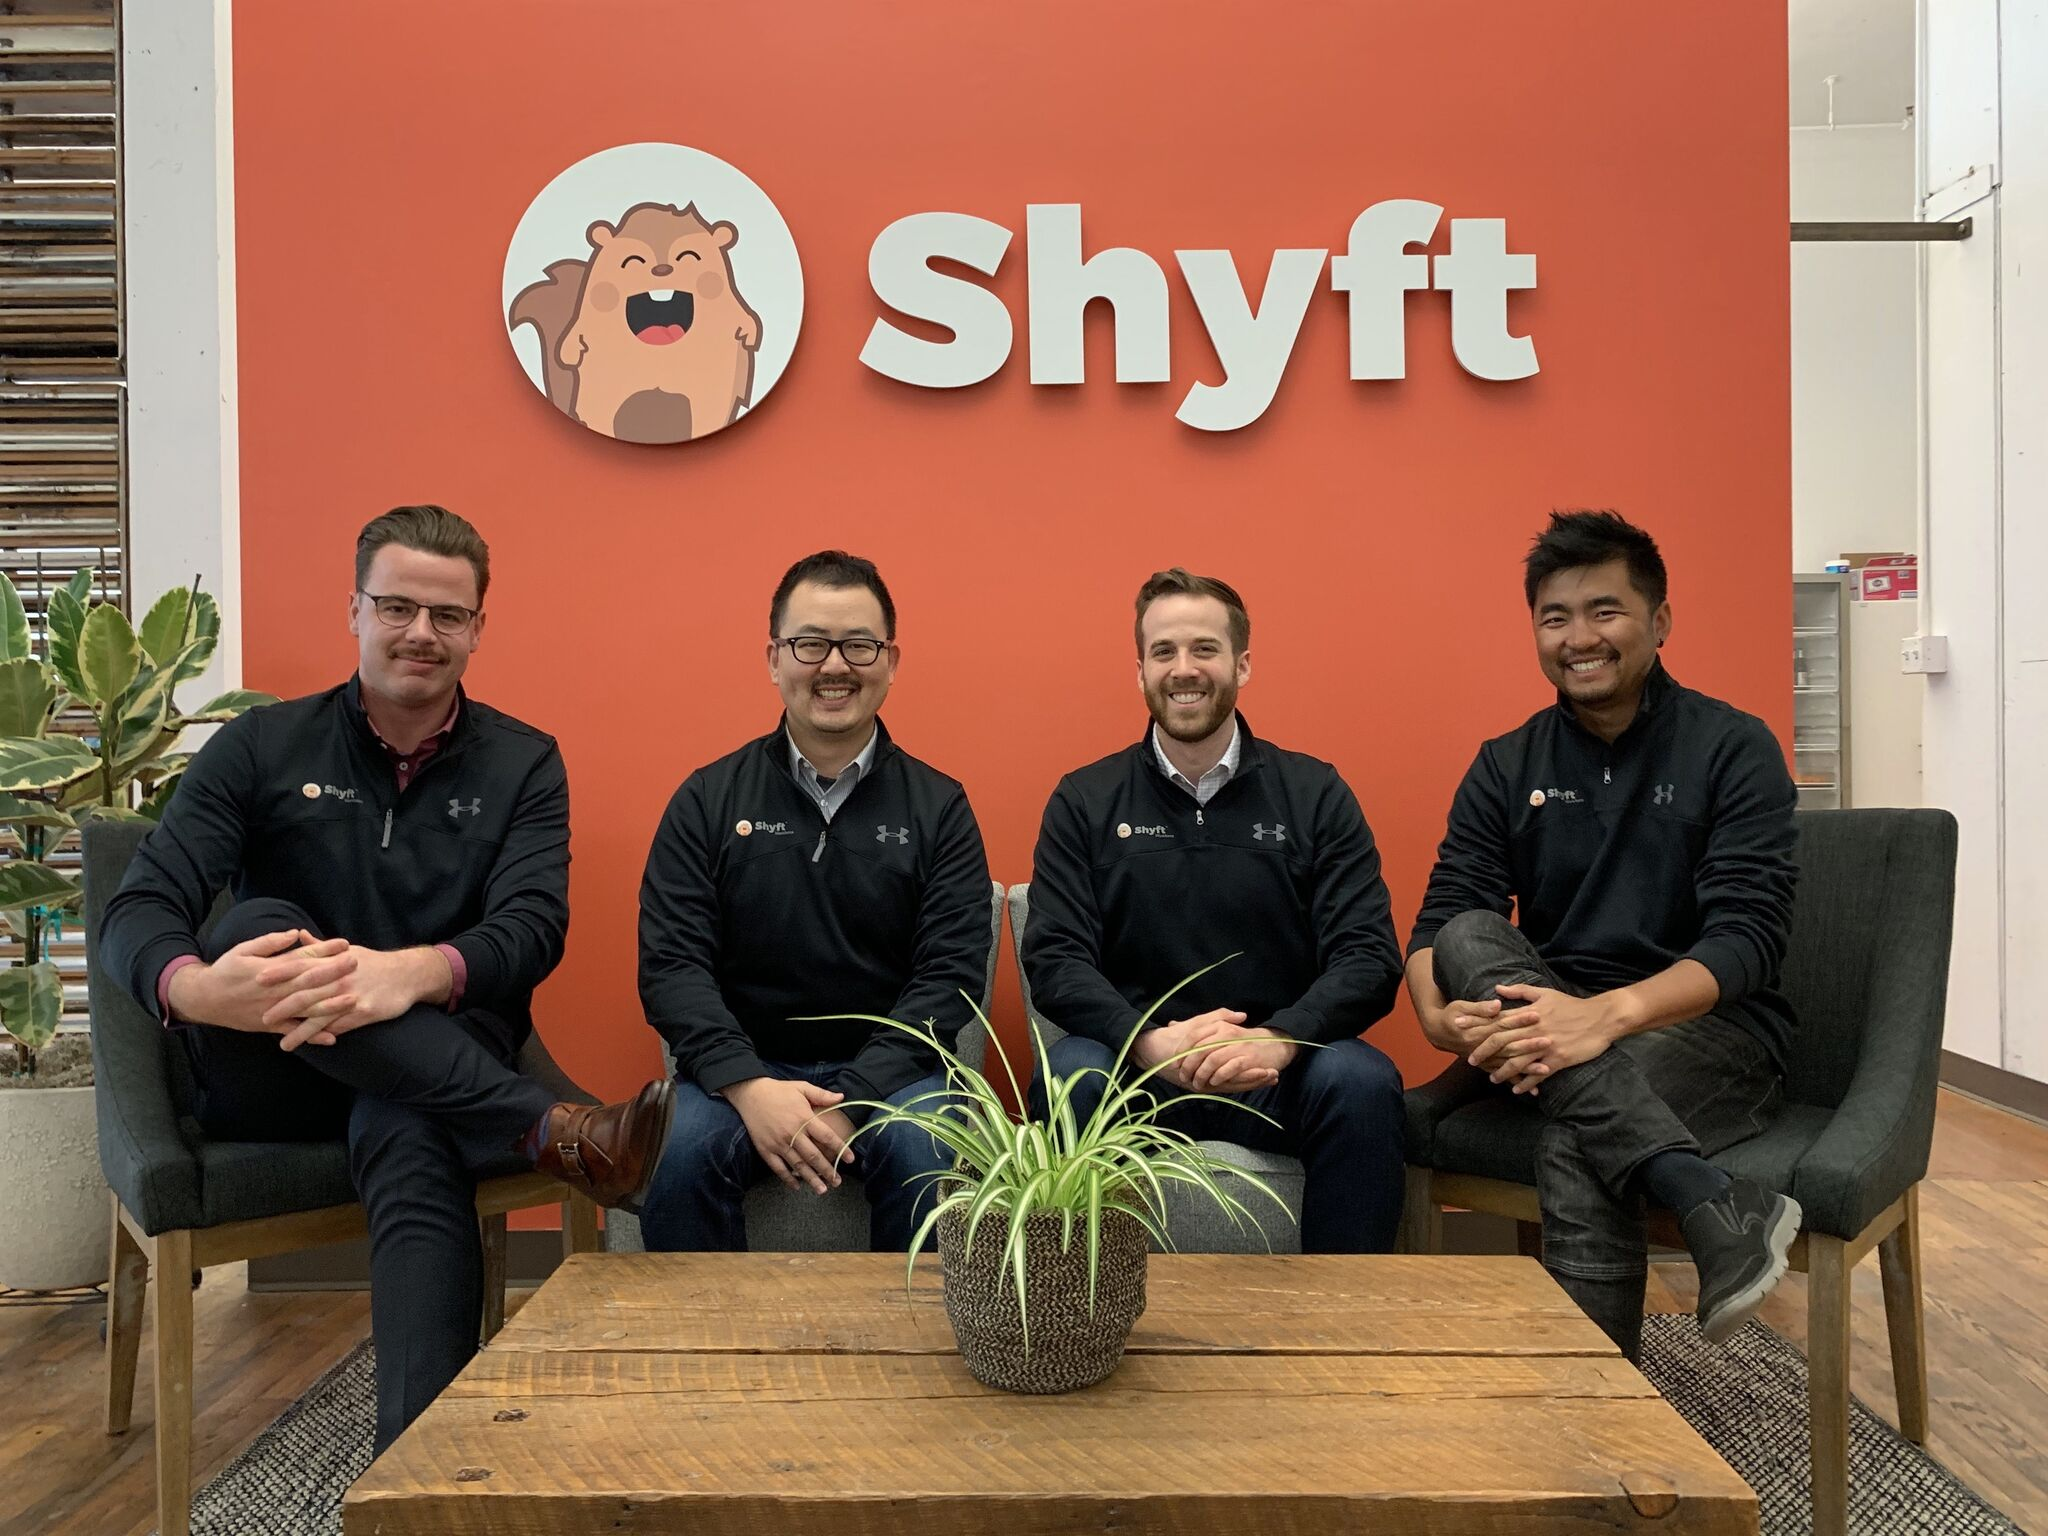 Seattle-based startup Shyft raises $6.5 million in Series A funding